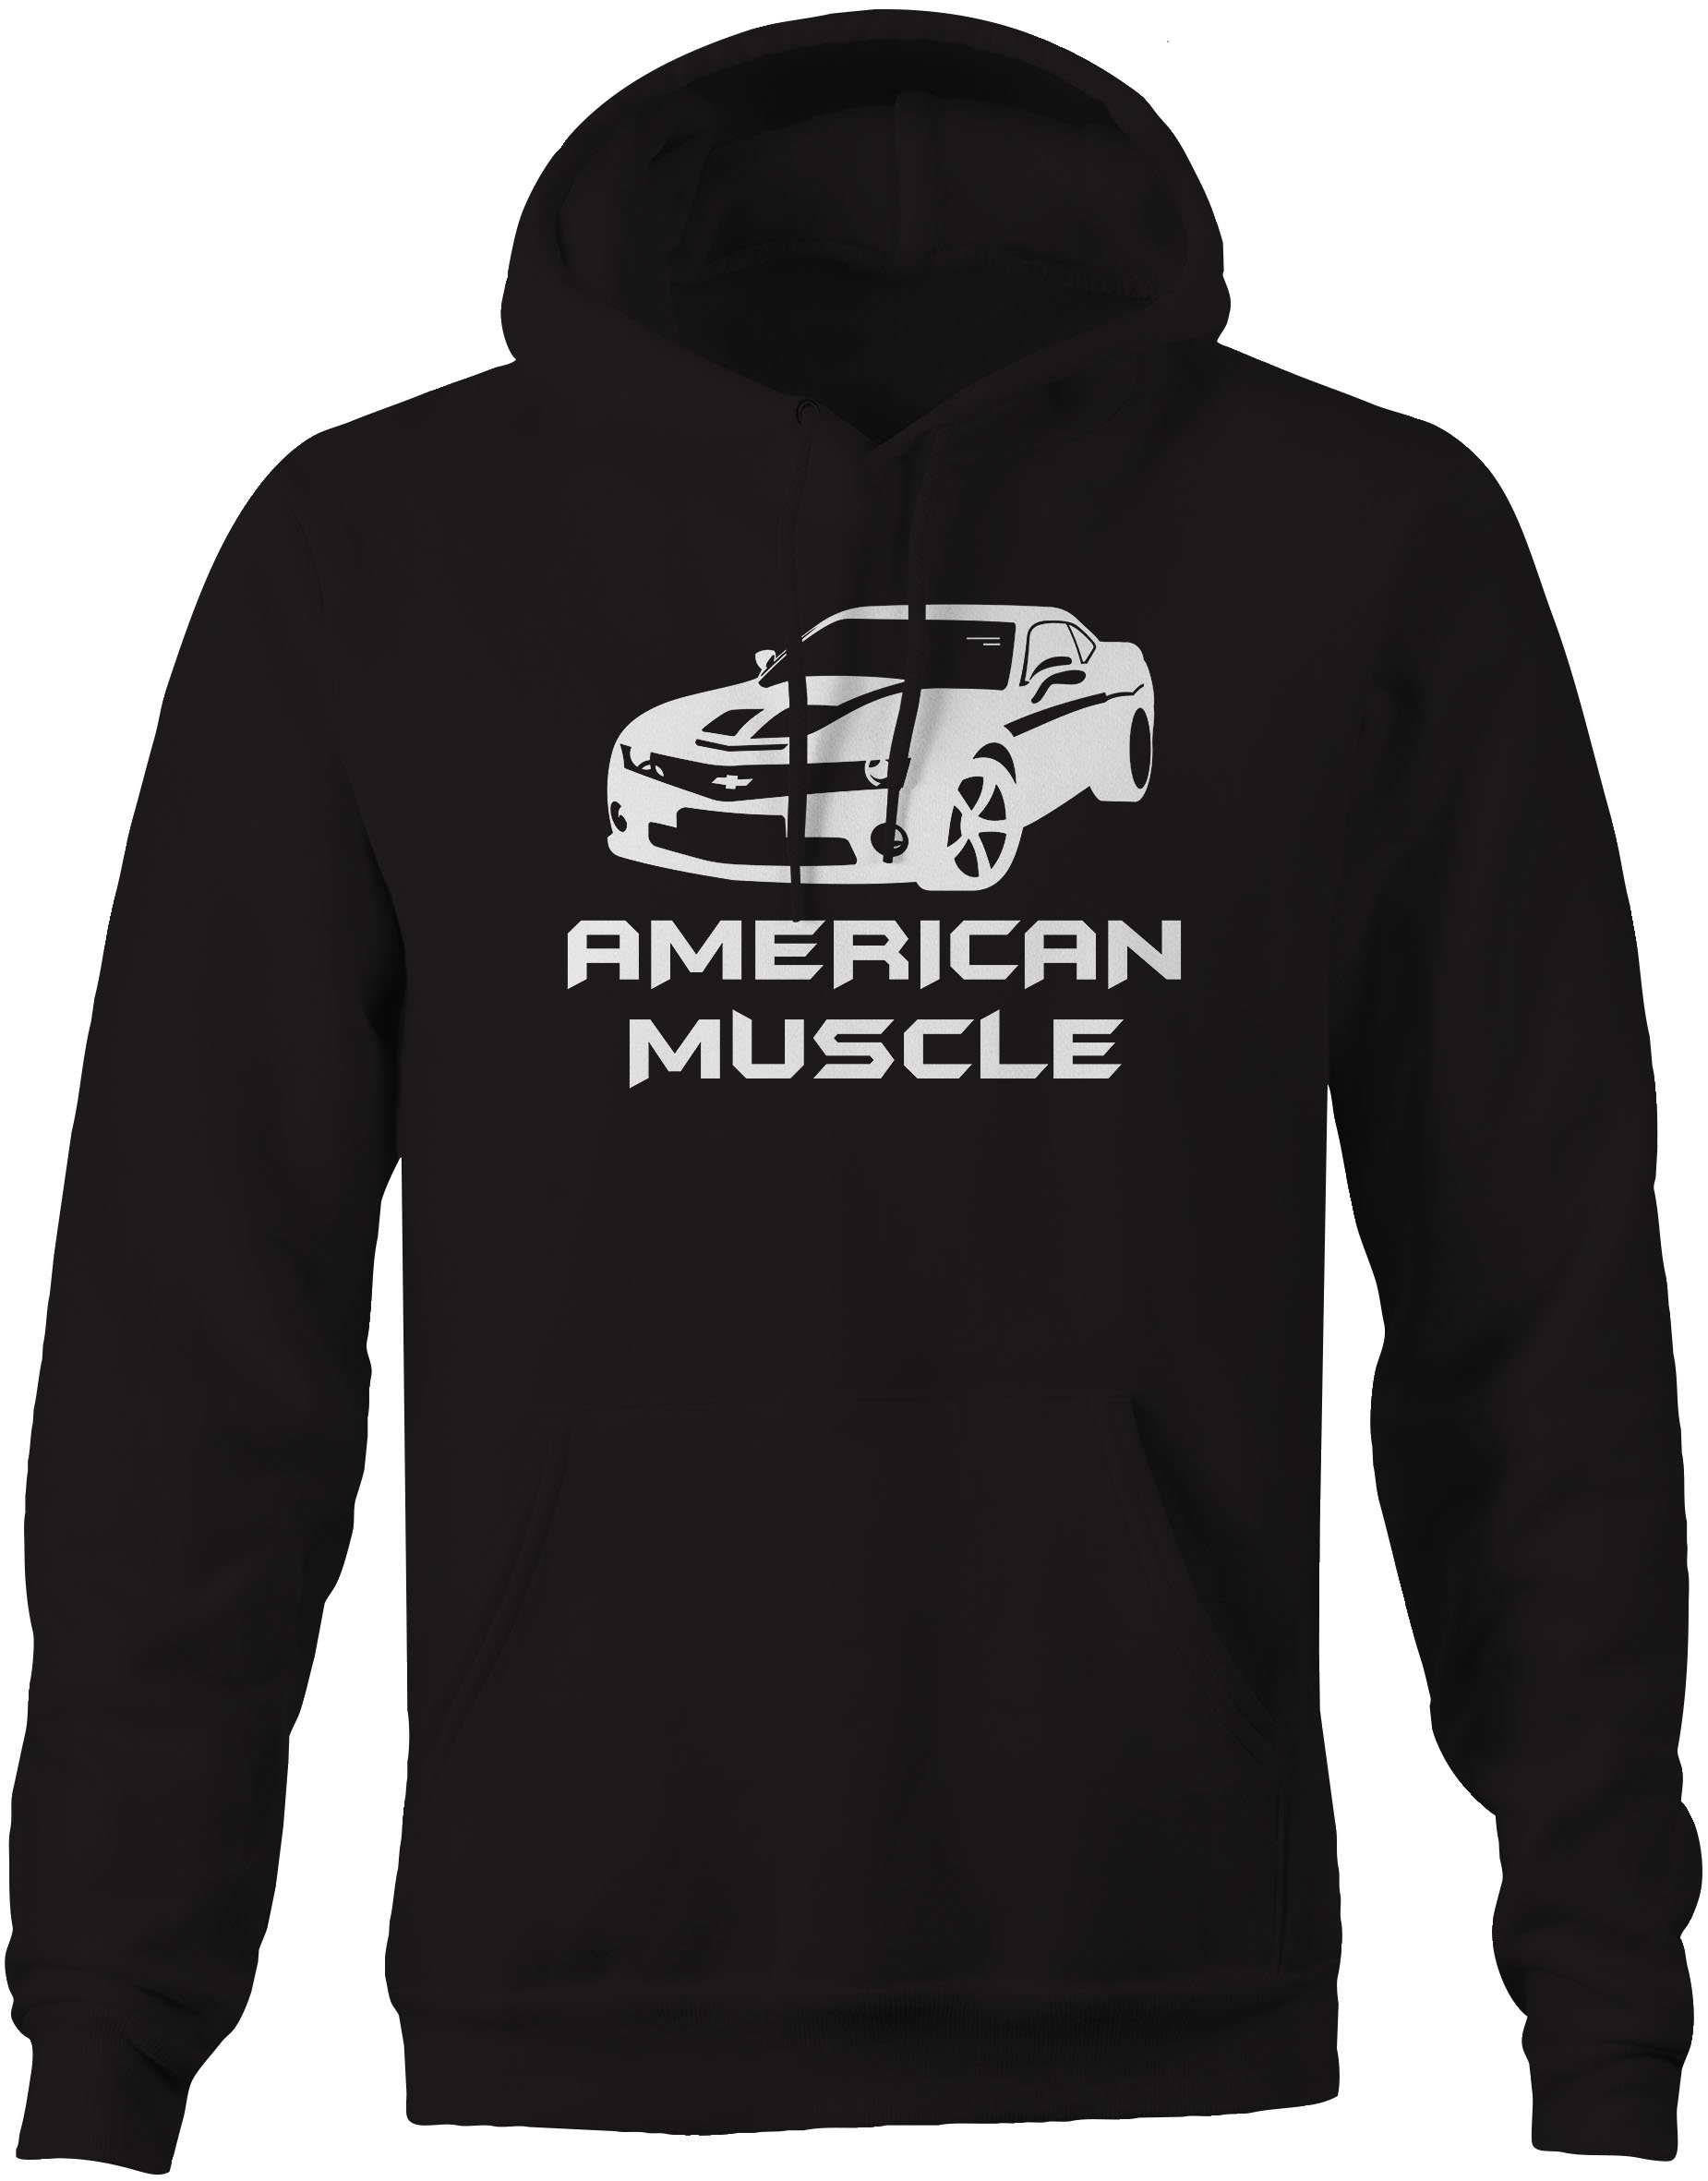 Import Euro Tuner Gear American Muscle Car Camaro Ss Fast Furious Movie Parts S Shirts